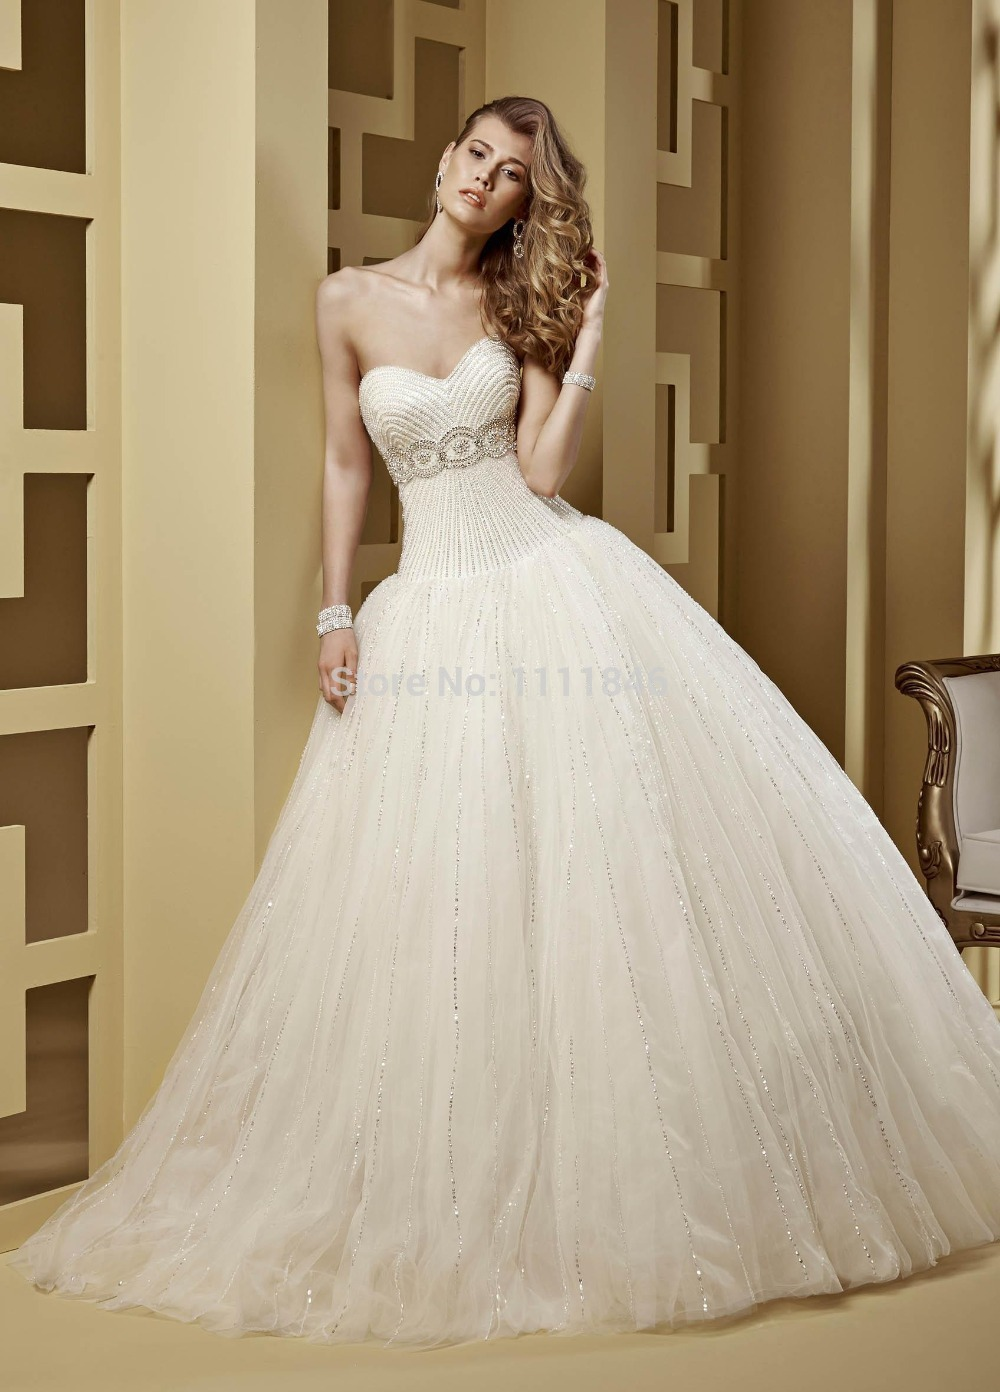 Bling Bling Crystals Corset Rhinestones Wedding Dress 2015